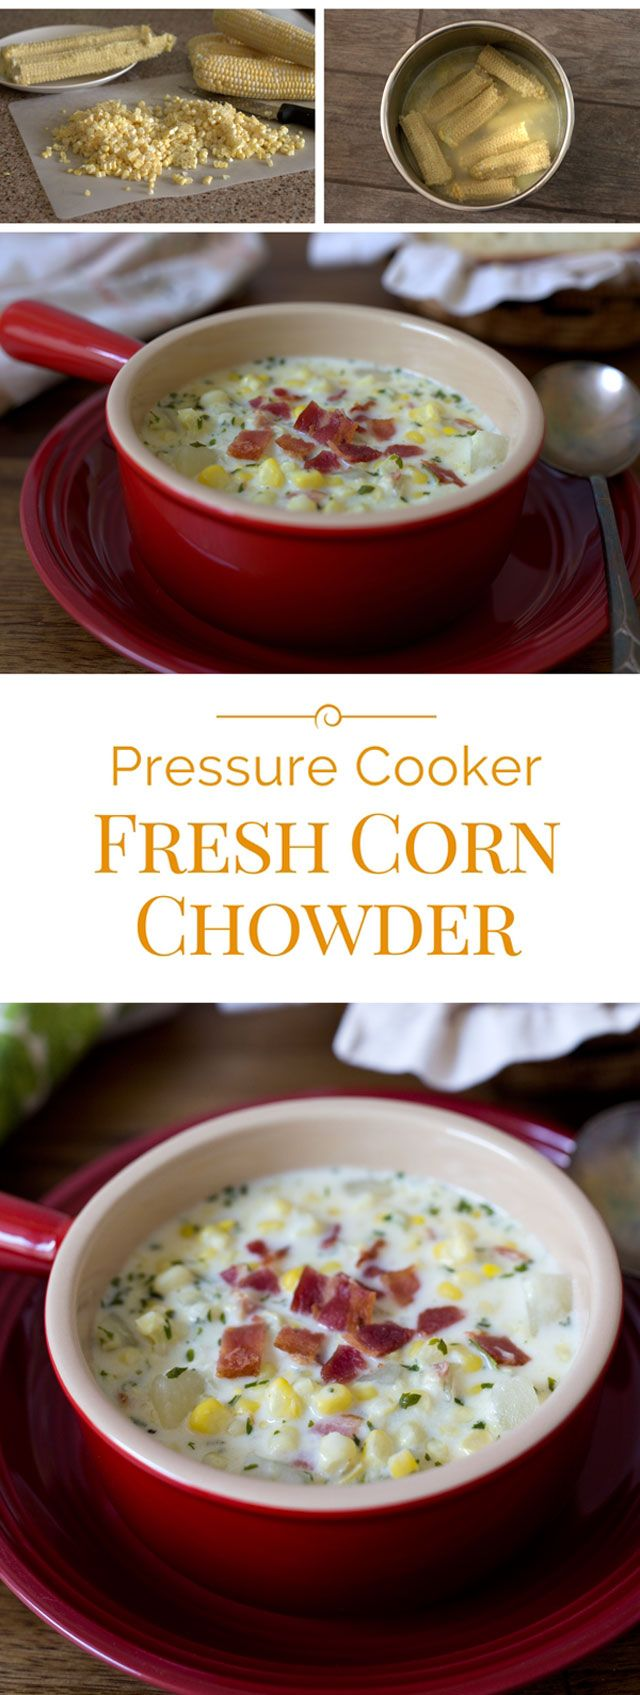 Pressure Cooker Fresh Corn Chowder made with fresh corn cut from the cob, a corn…